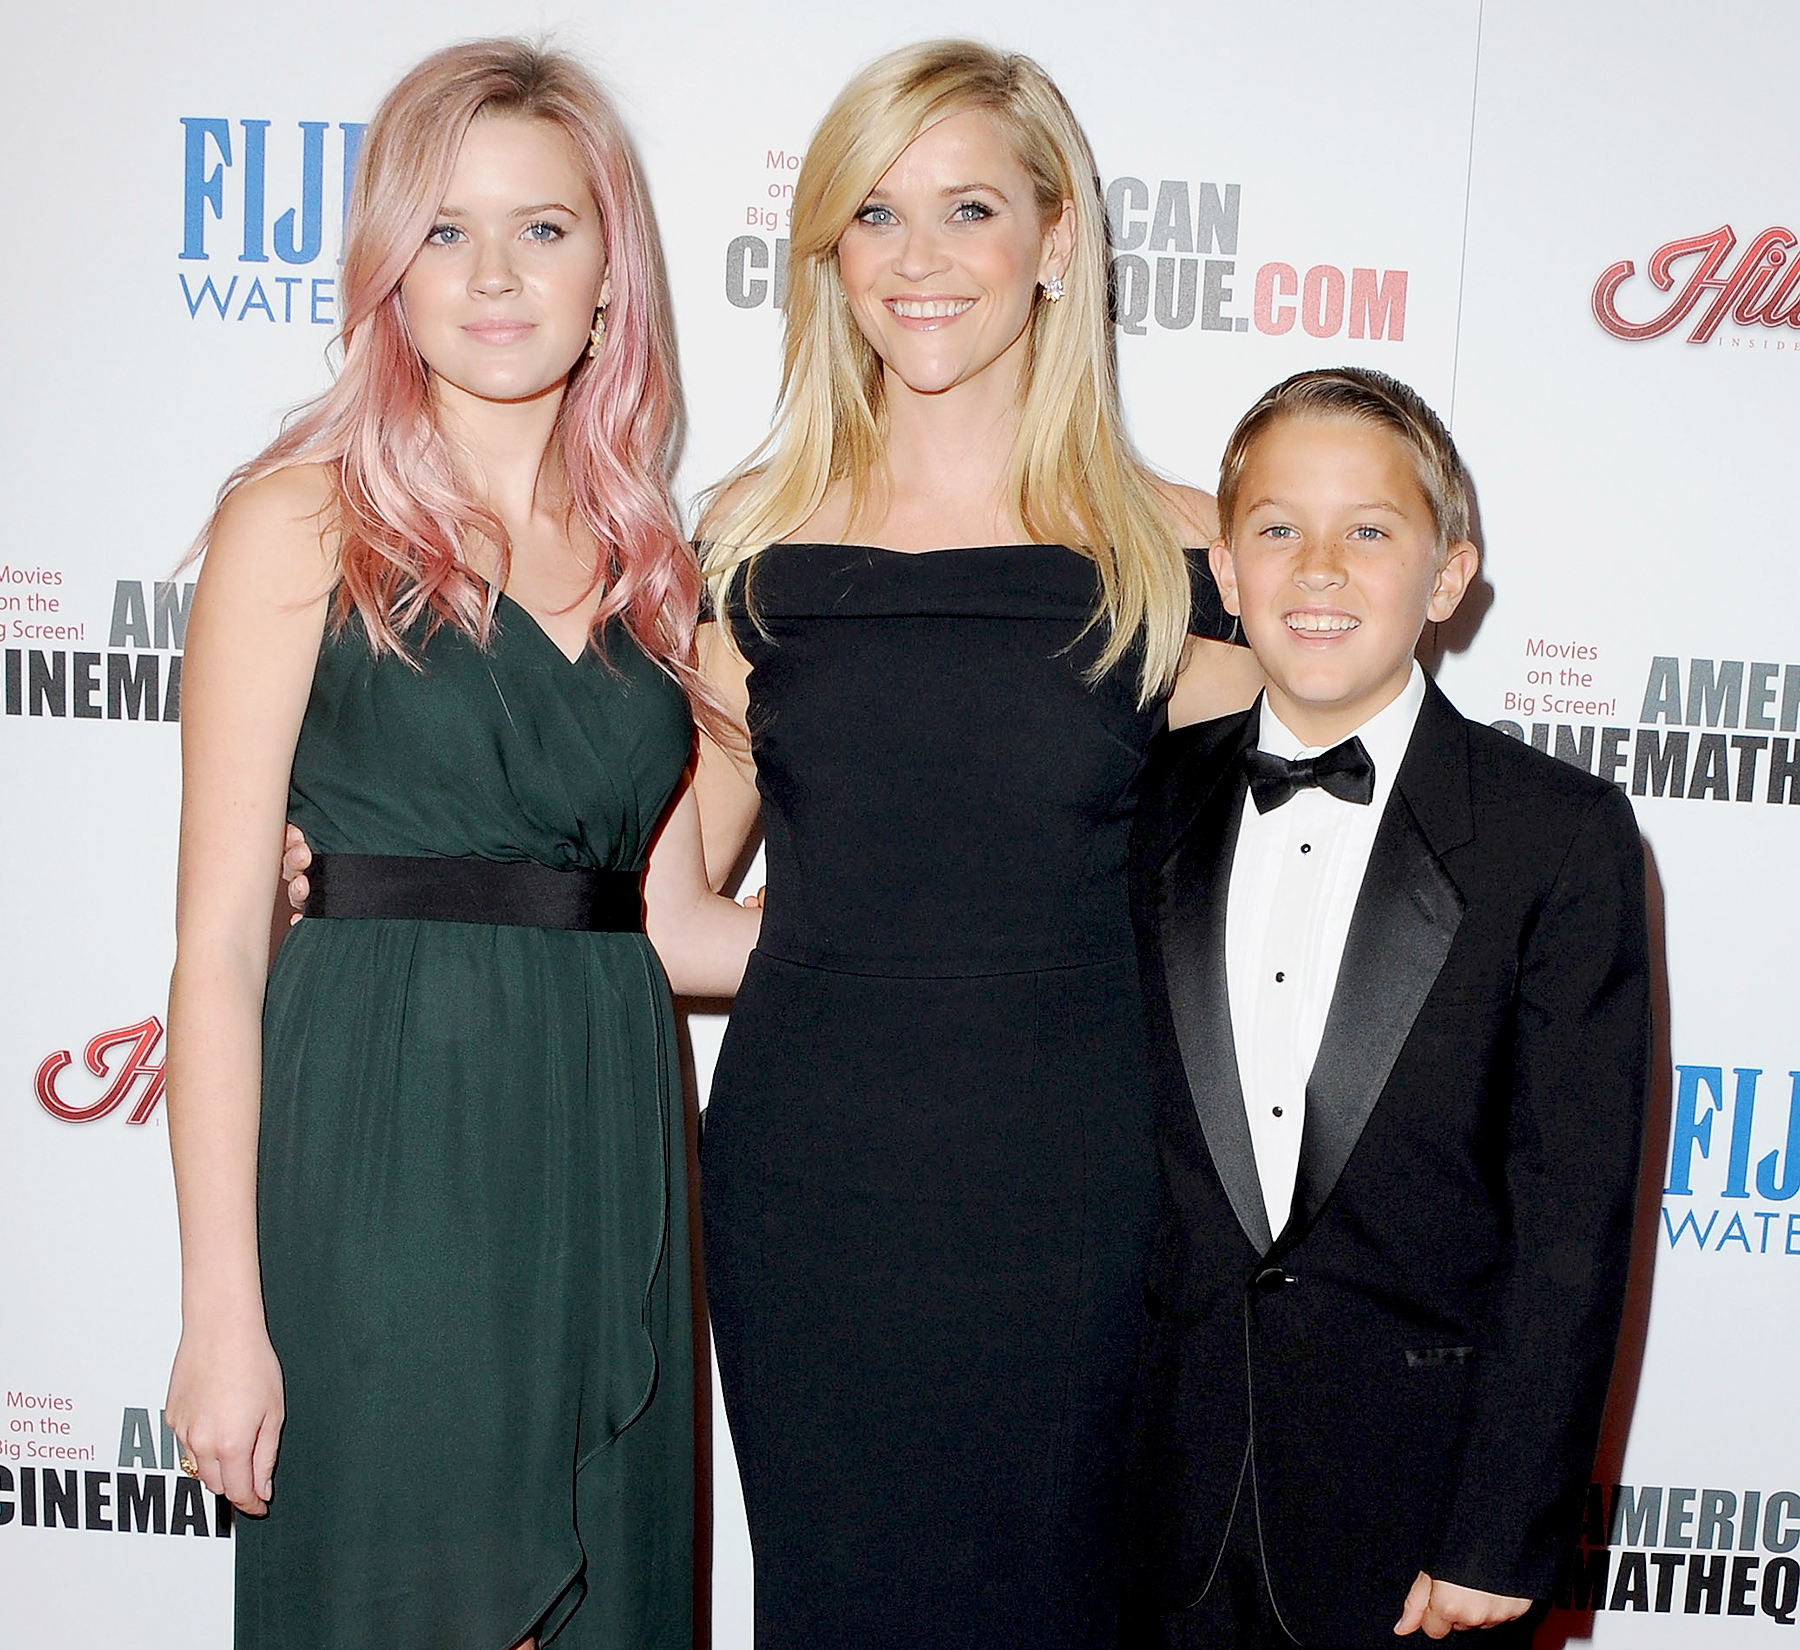 Reese Witherspoon, daughter Ava Phillippe (L) and son Deacon Phillippe (R) arrive at the 29th American Cinematheque Award Honoring Reese Witherspoon at the Hyatt Regency Century Plaza on October 30, 2015 in Los Angeles, California.